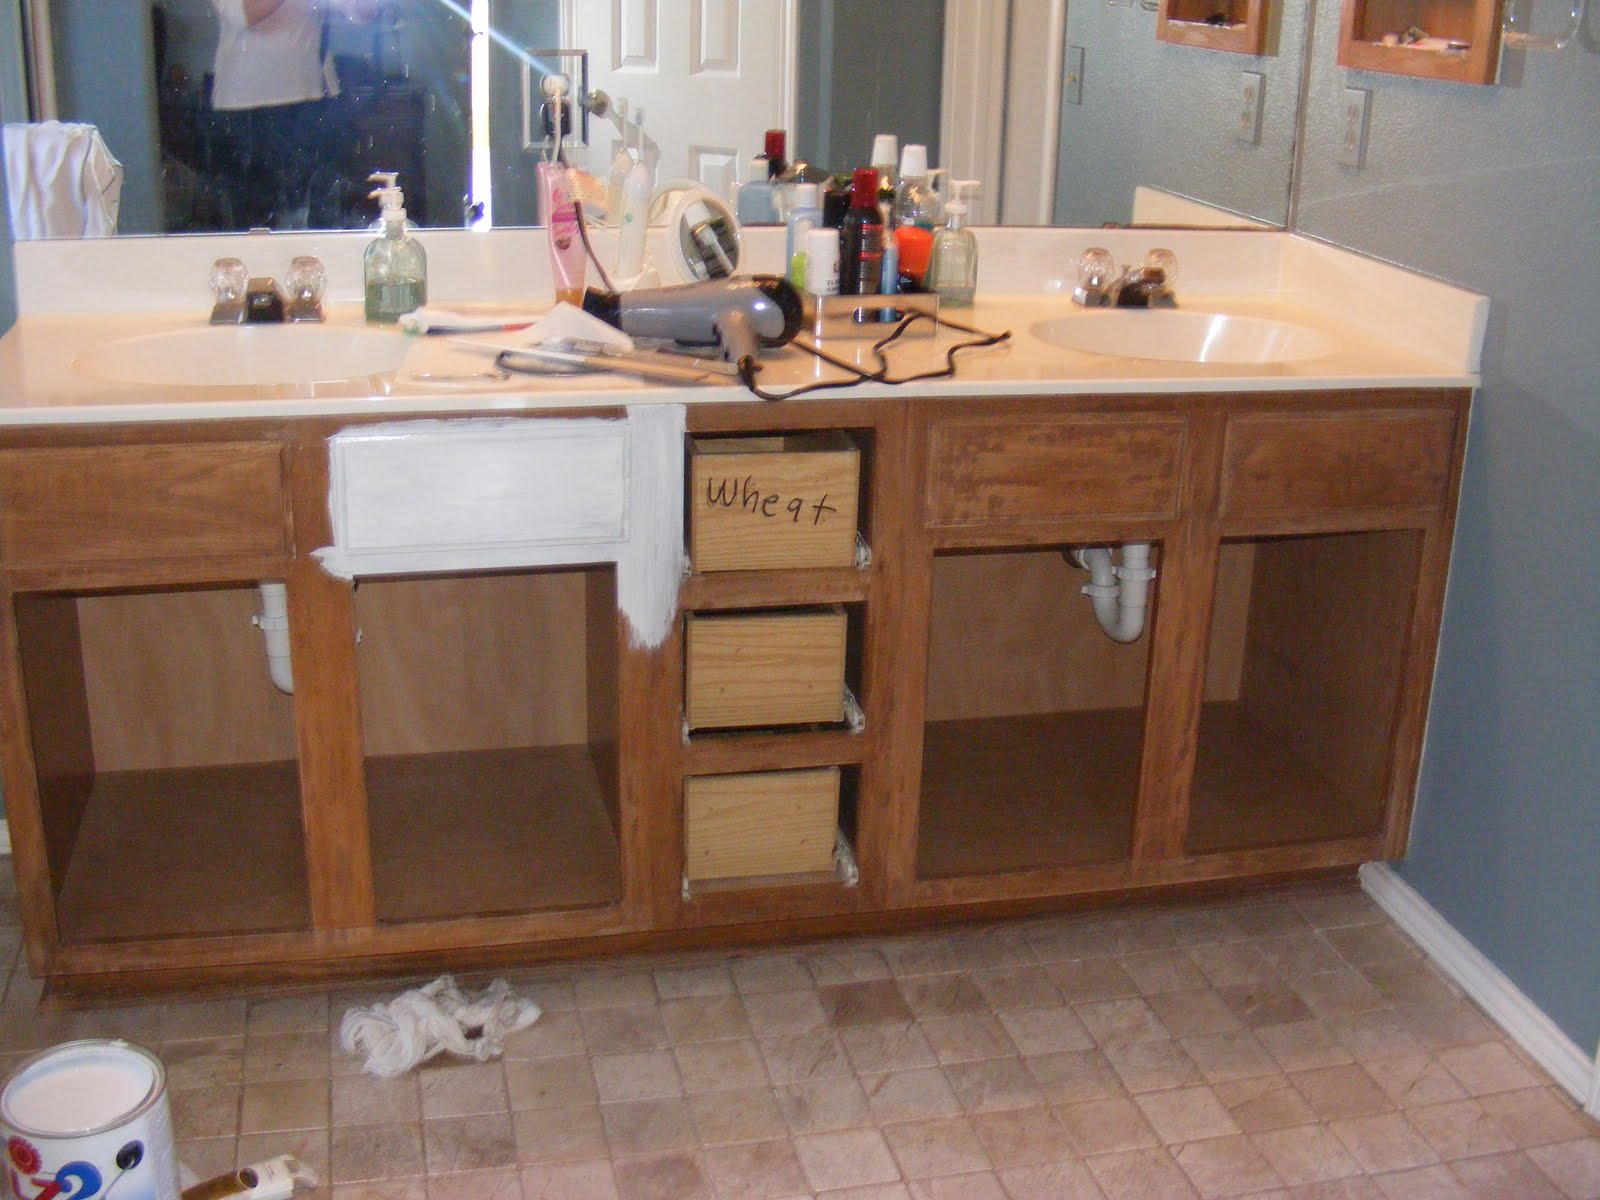 How To Repaint Bathroom Cabinets White red's rave: how to strip and paint your bathroom vanity